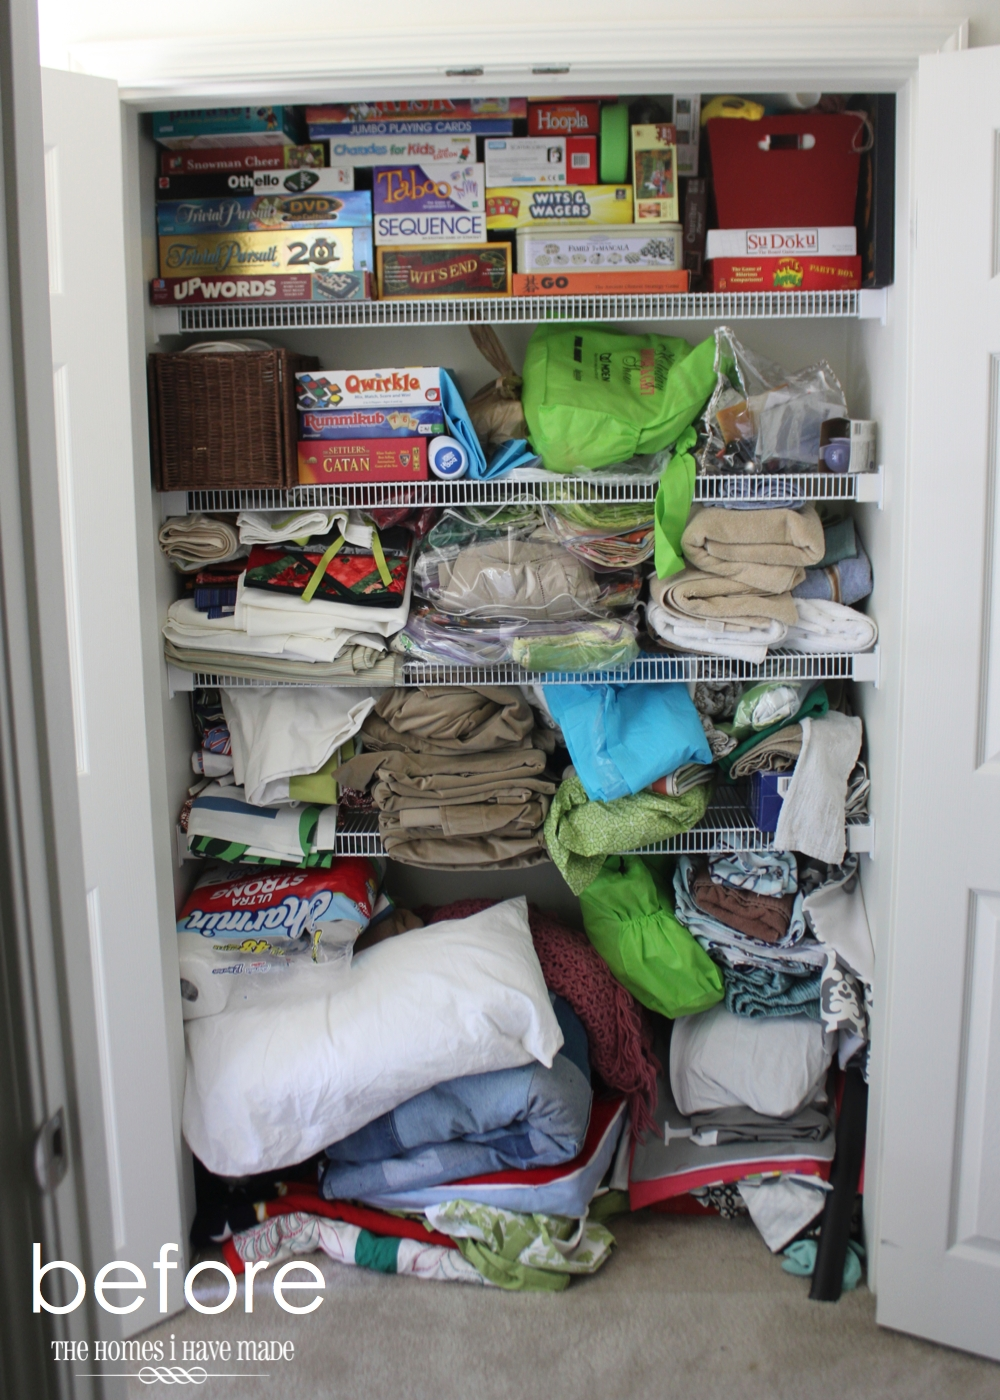 Ideas for Organizing the Linen Closet | The Homes I Have Made